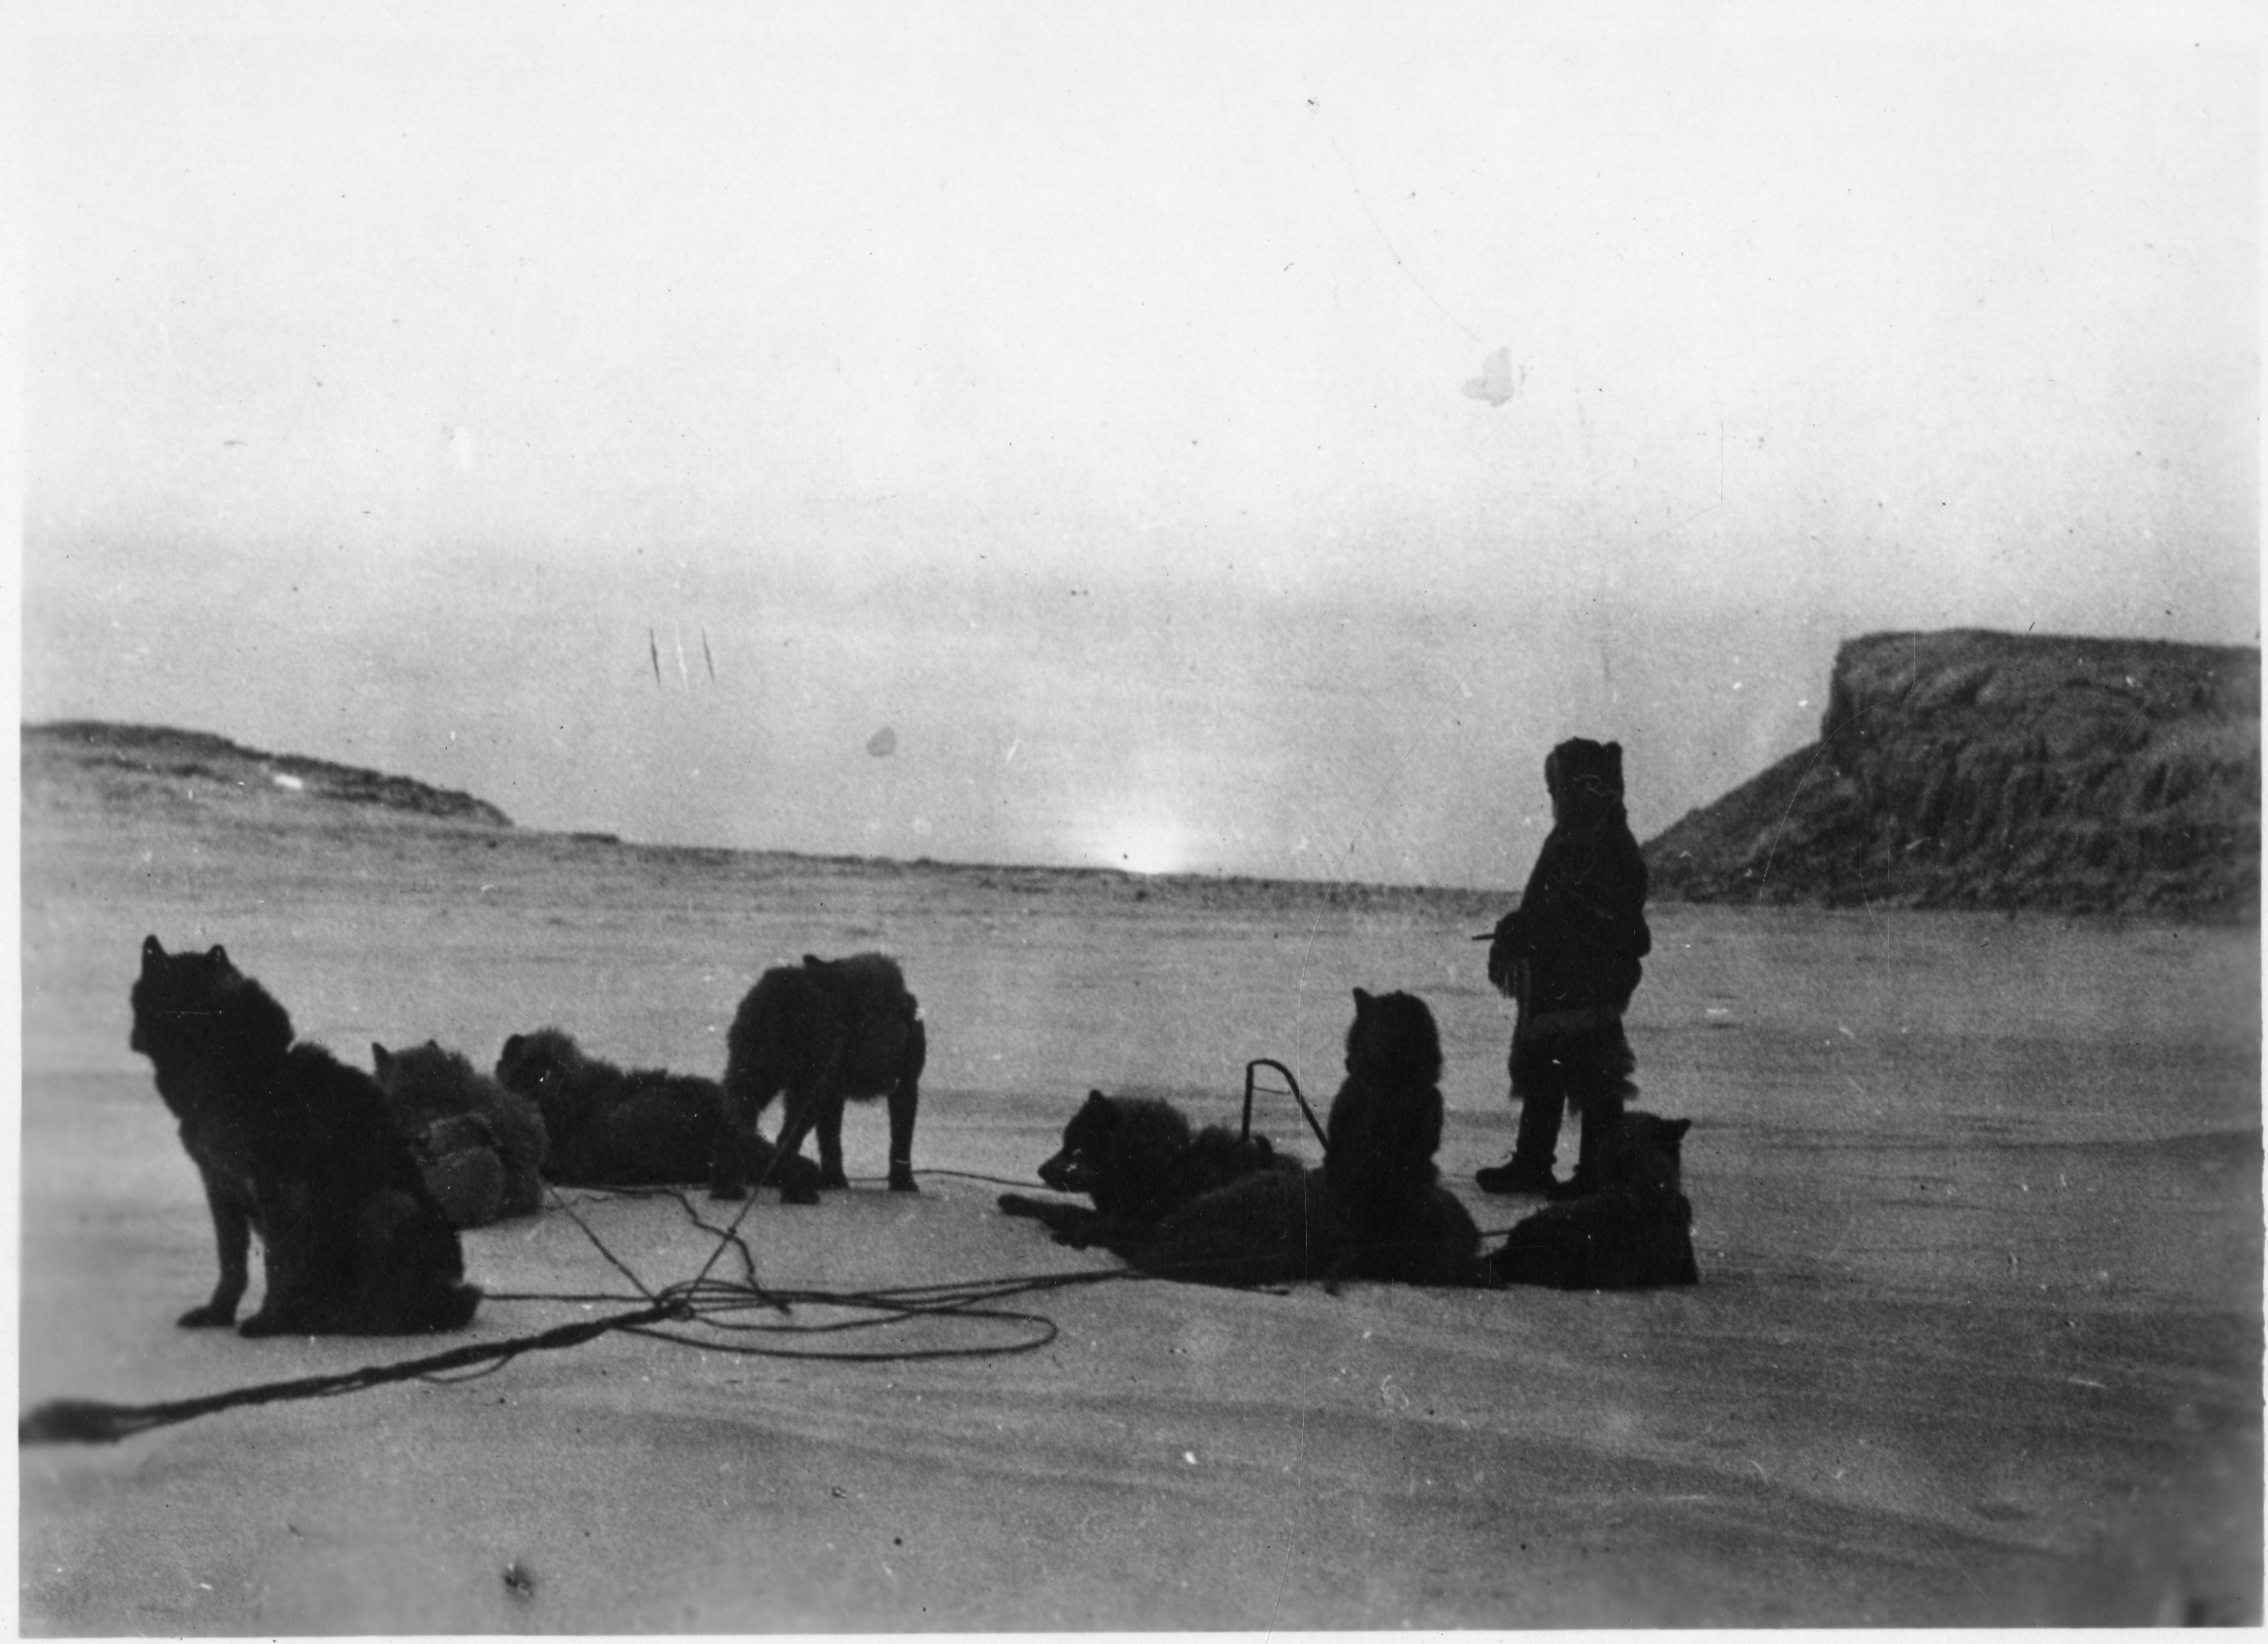 Black and white image of person with multiple dogs in artic enviroment.